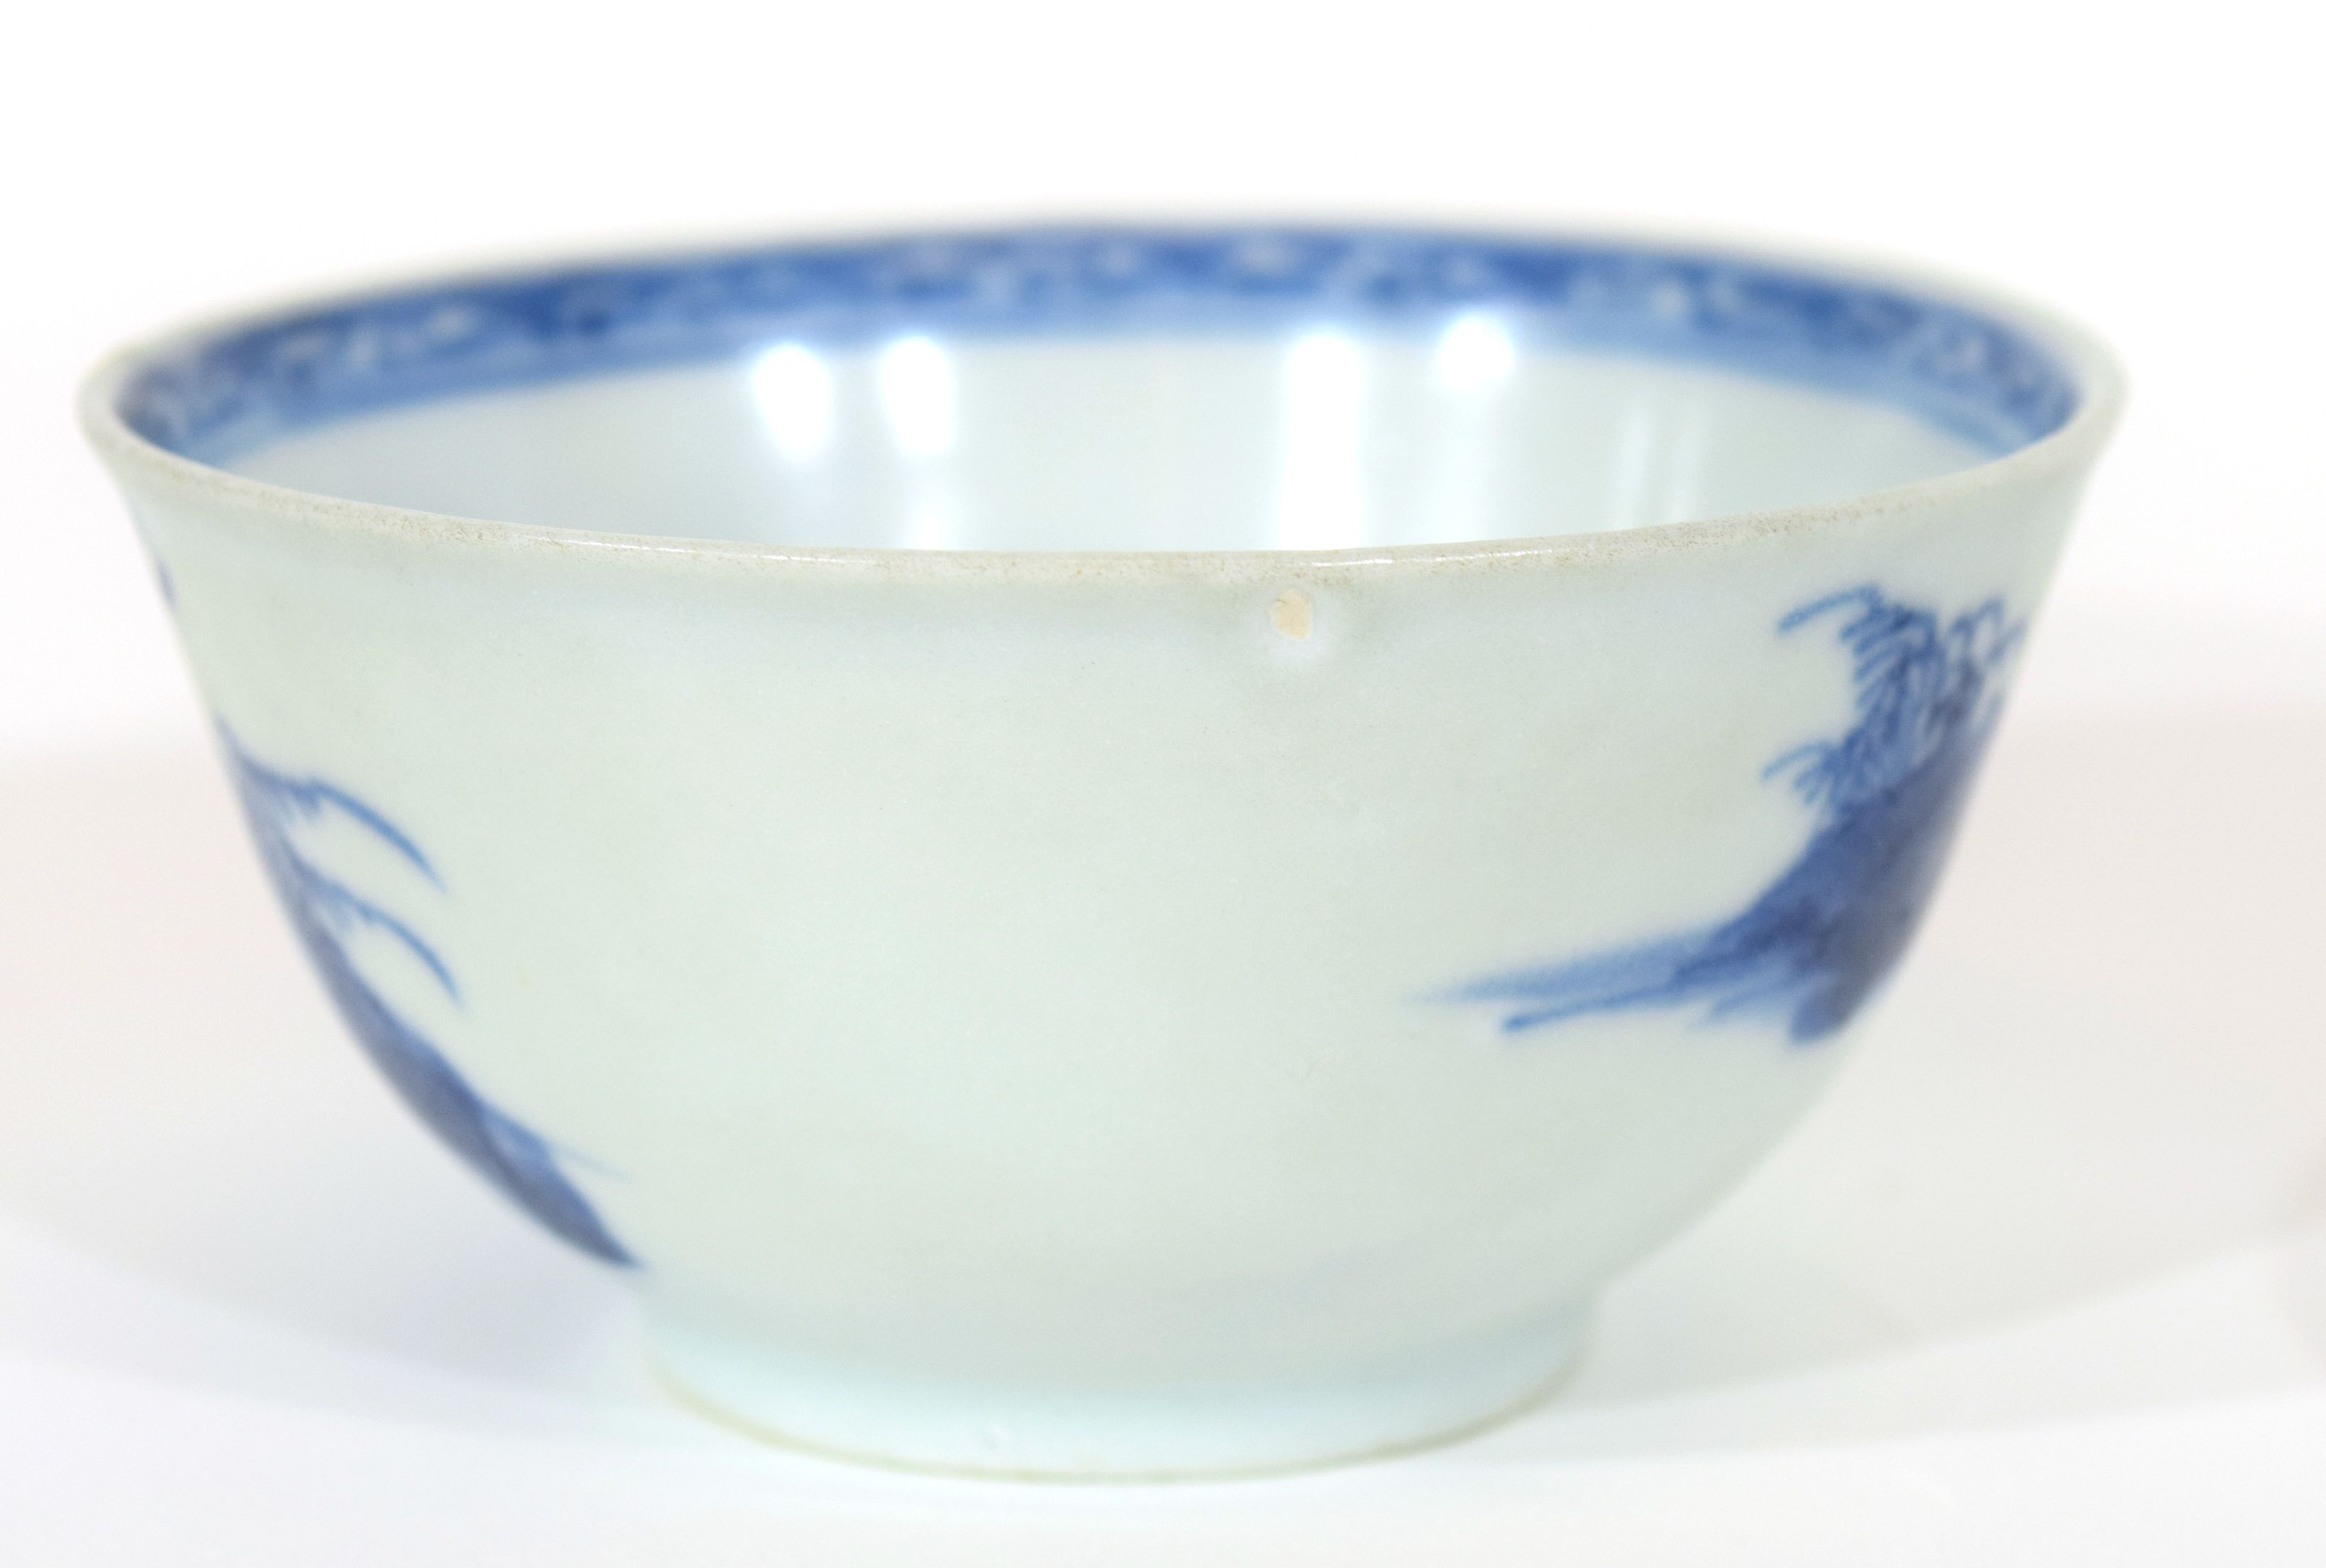 18th century Chinese porcelain Nanking Cargo tea bowl and saucer - Image 10 of 15